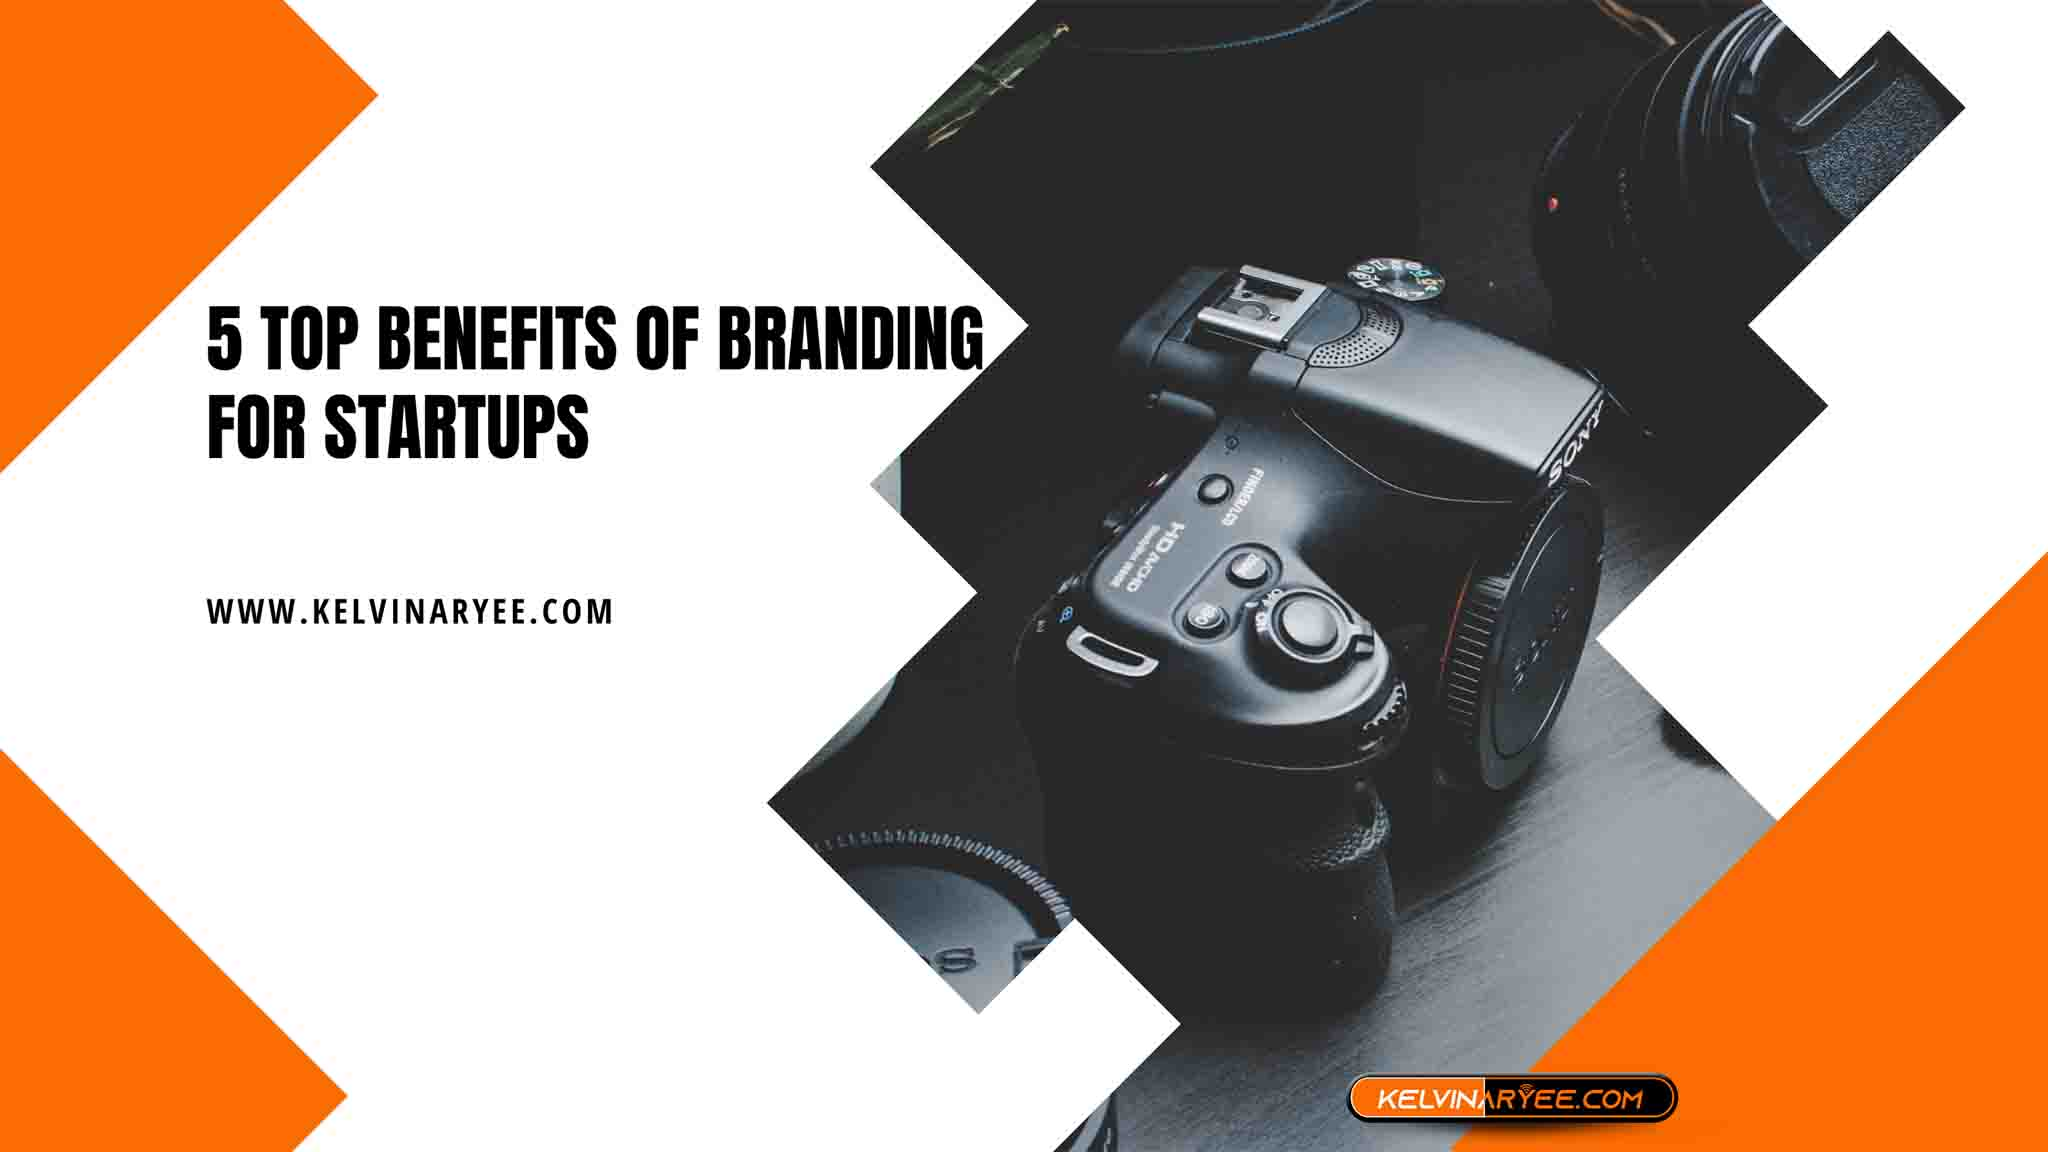 5 Top Benefits of Branding for Startups